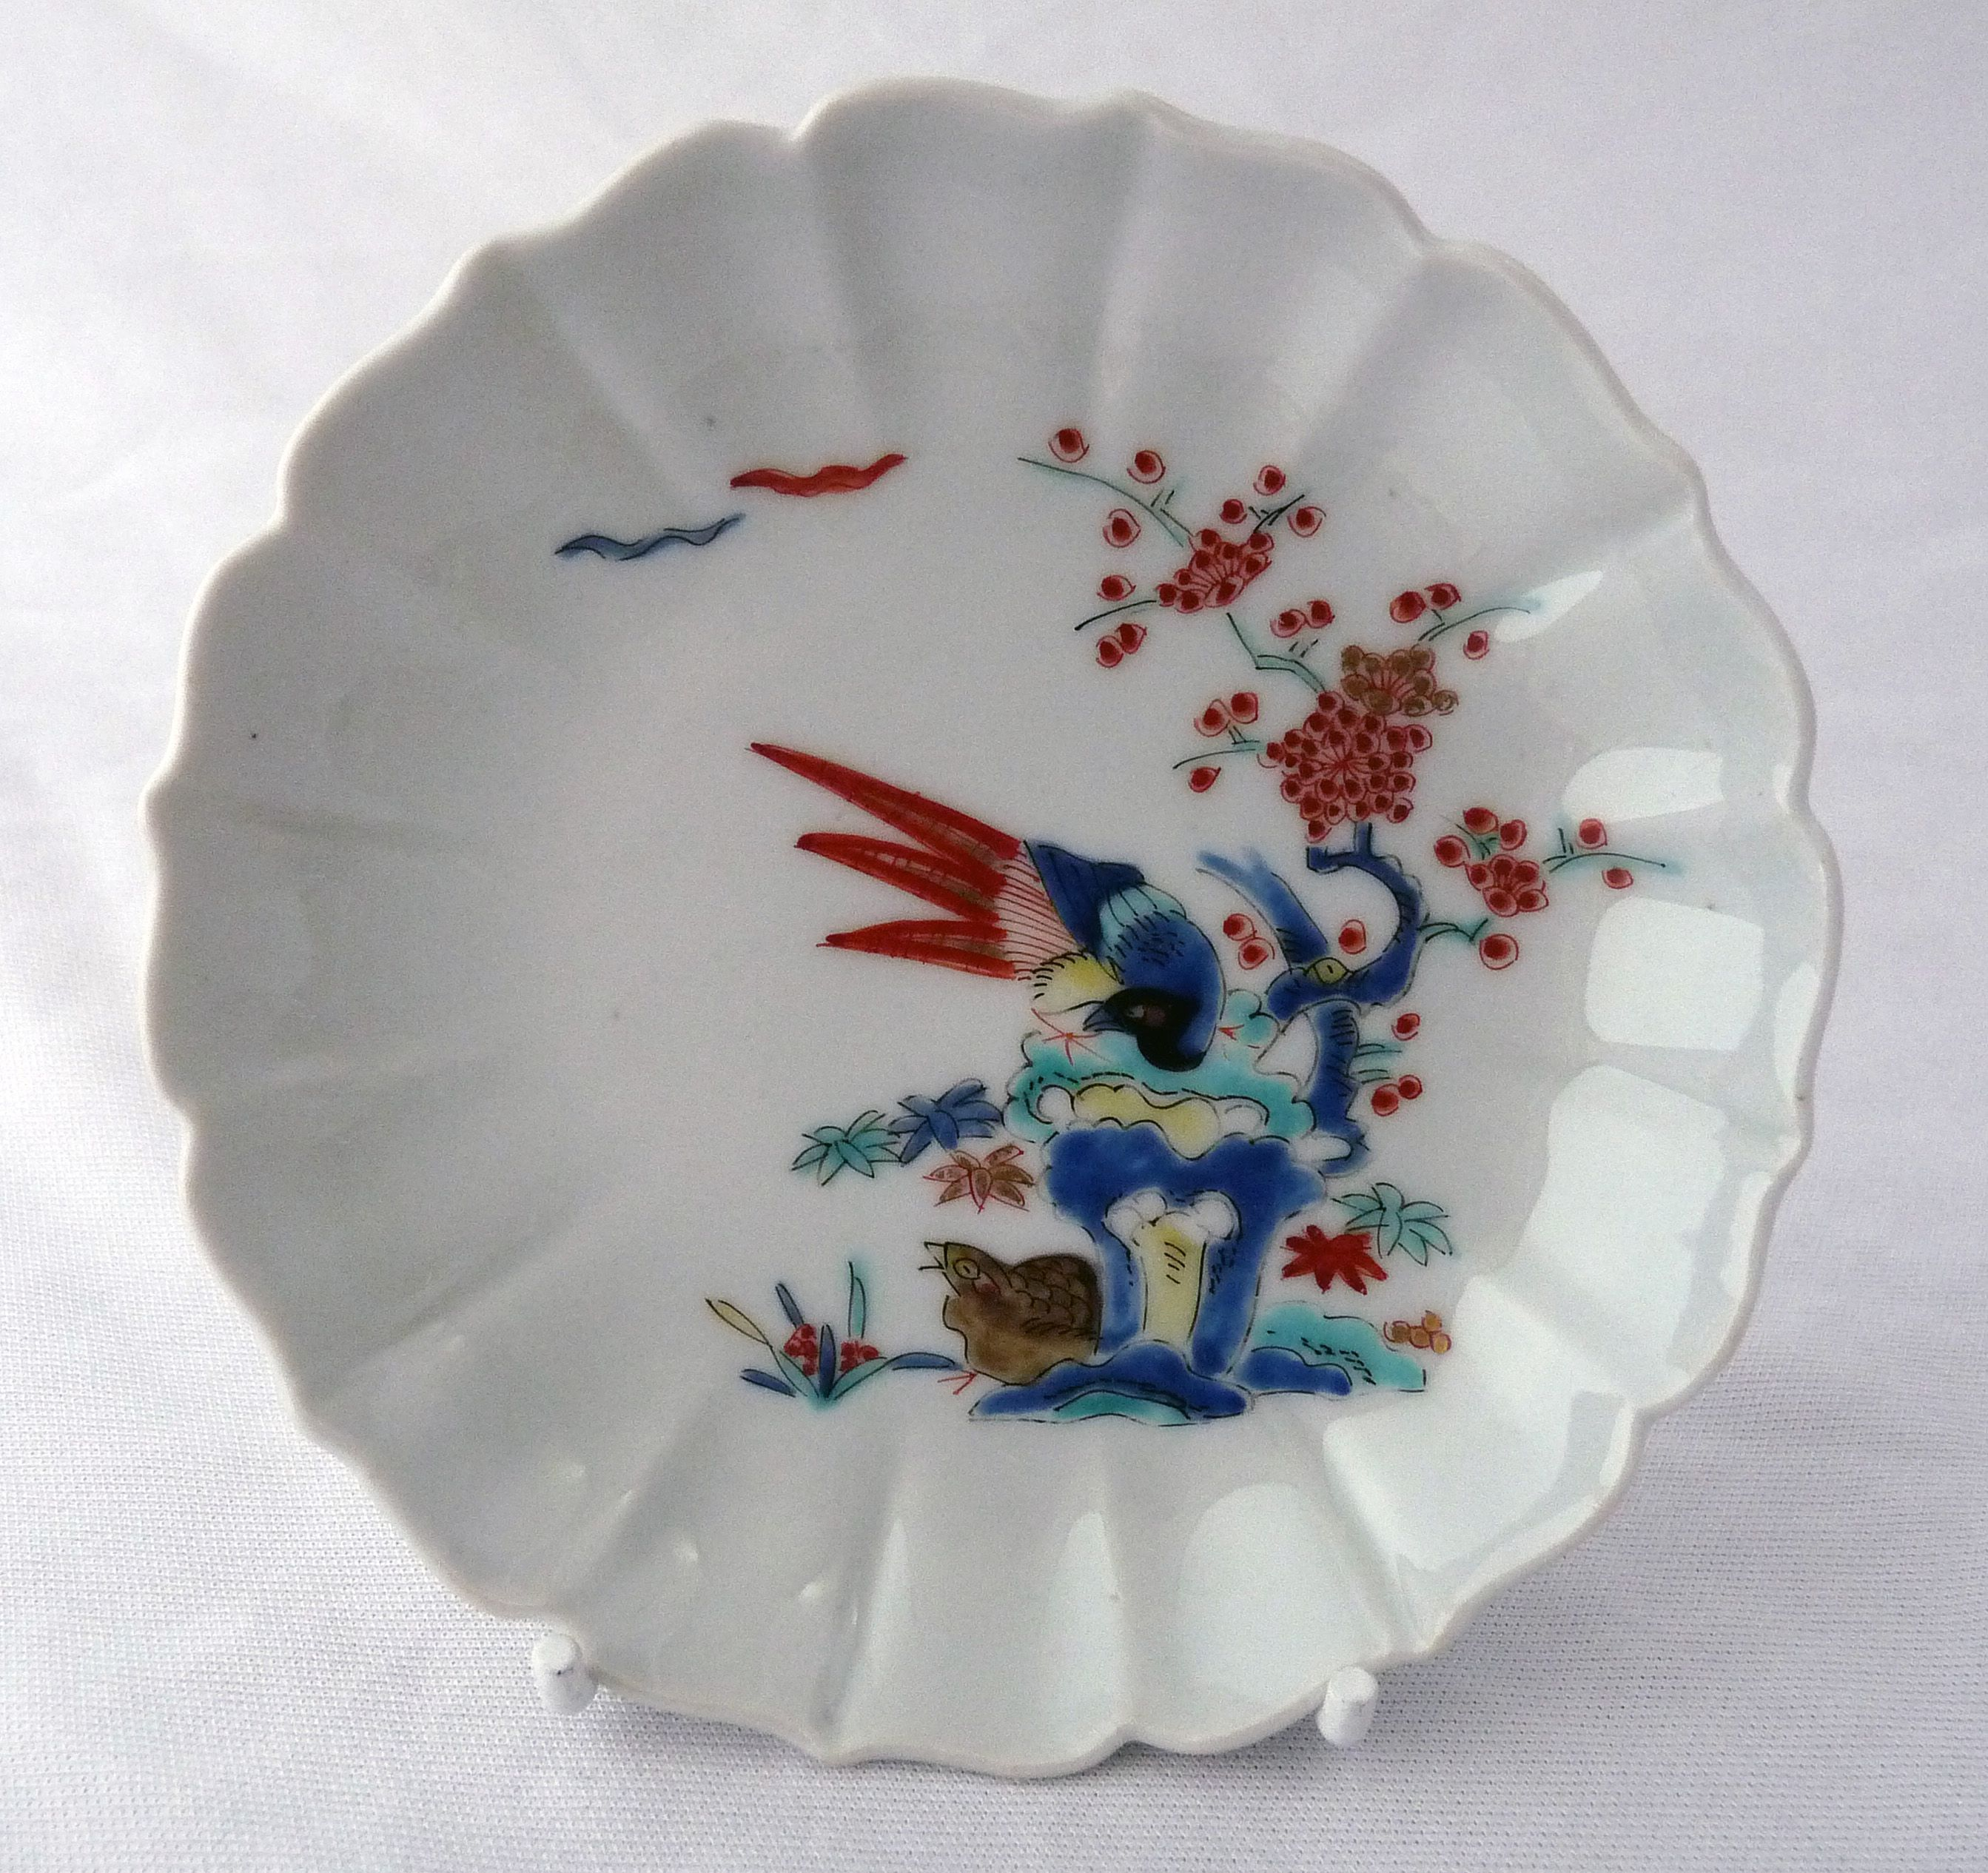 Late 17th to 18th century Japanese Kakiemon Small Saucer